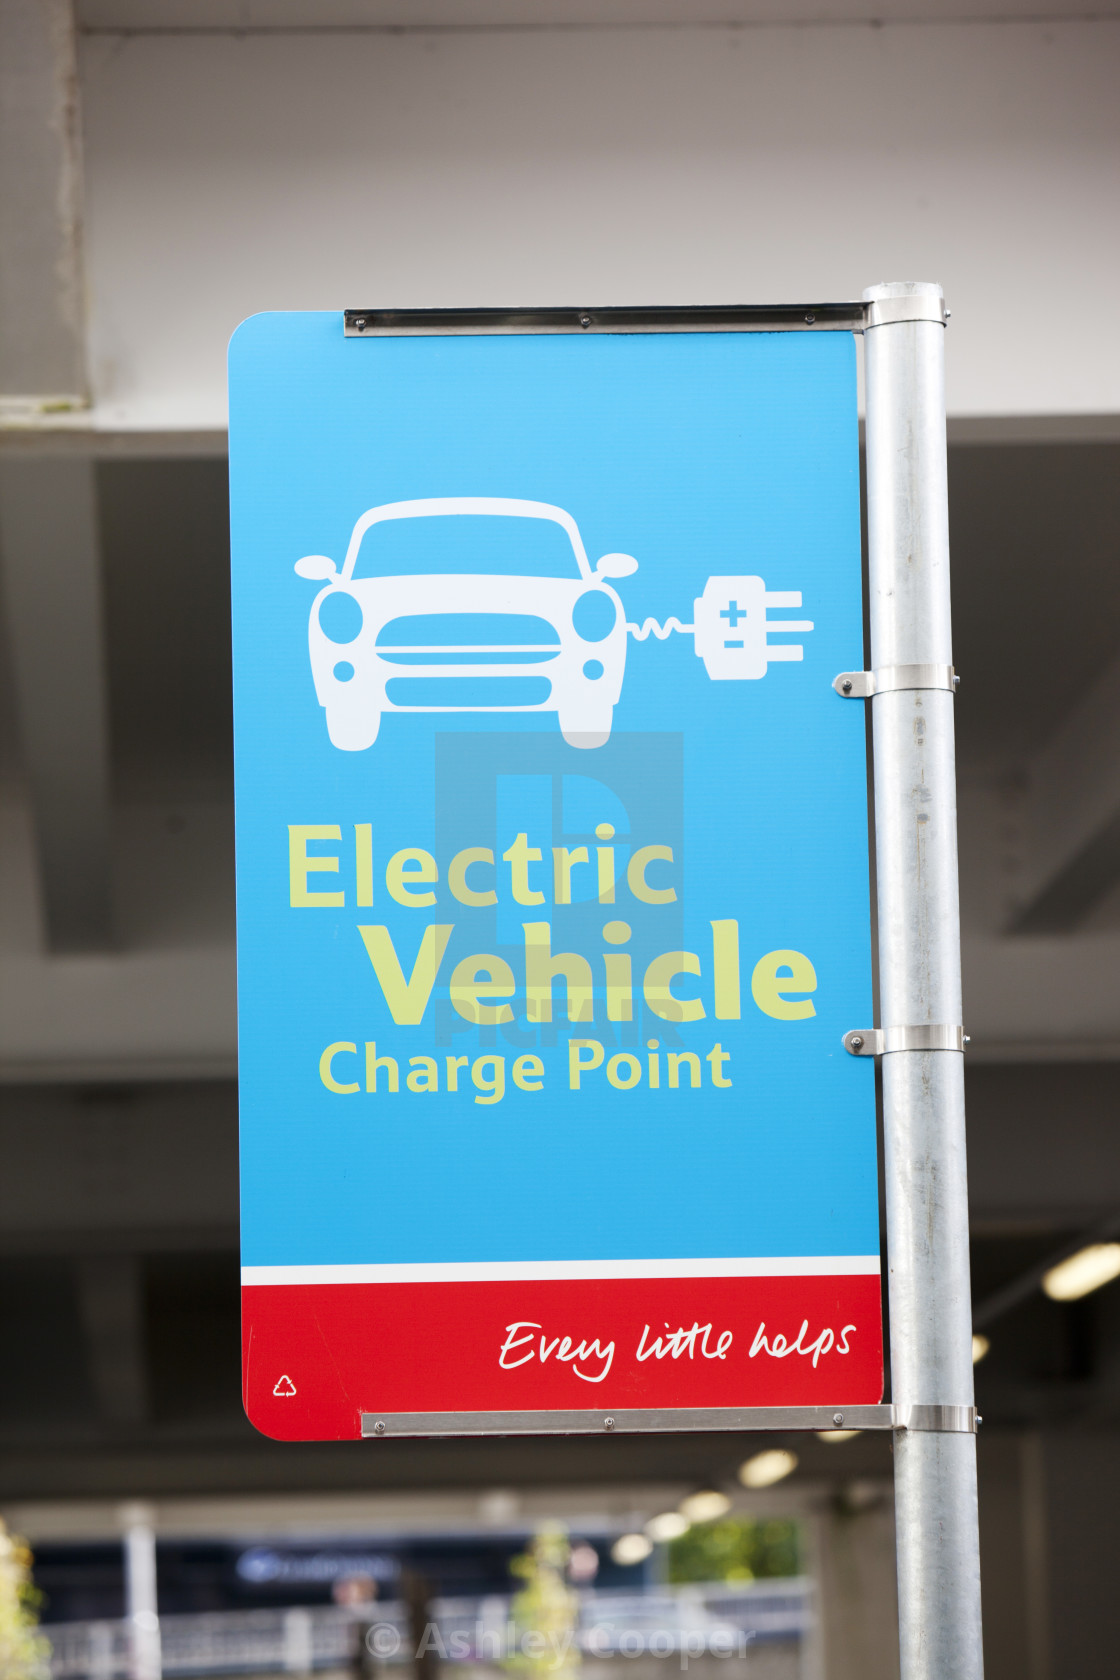 An electric car charging point provided free of charge in a